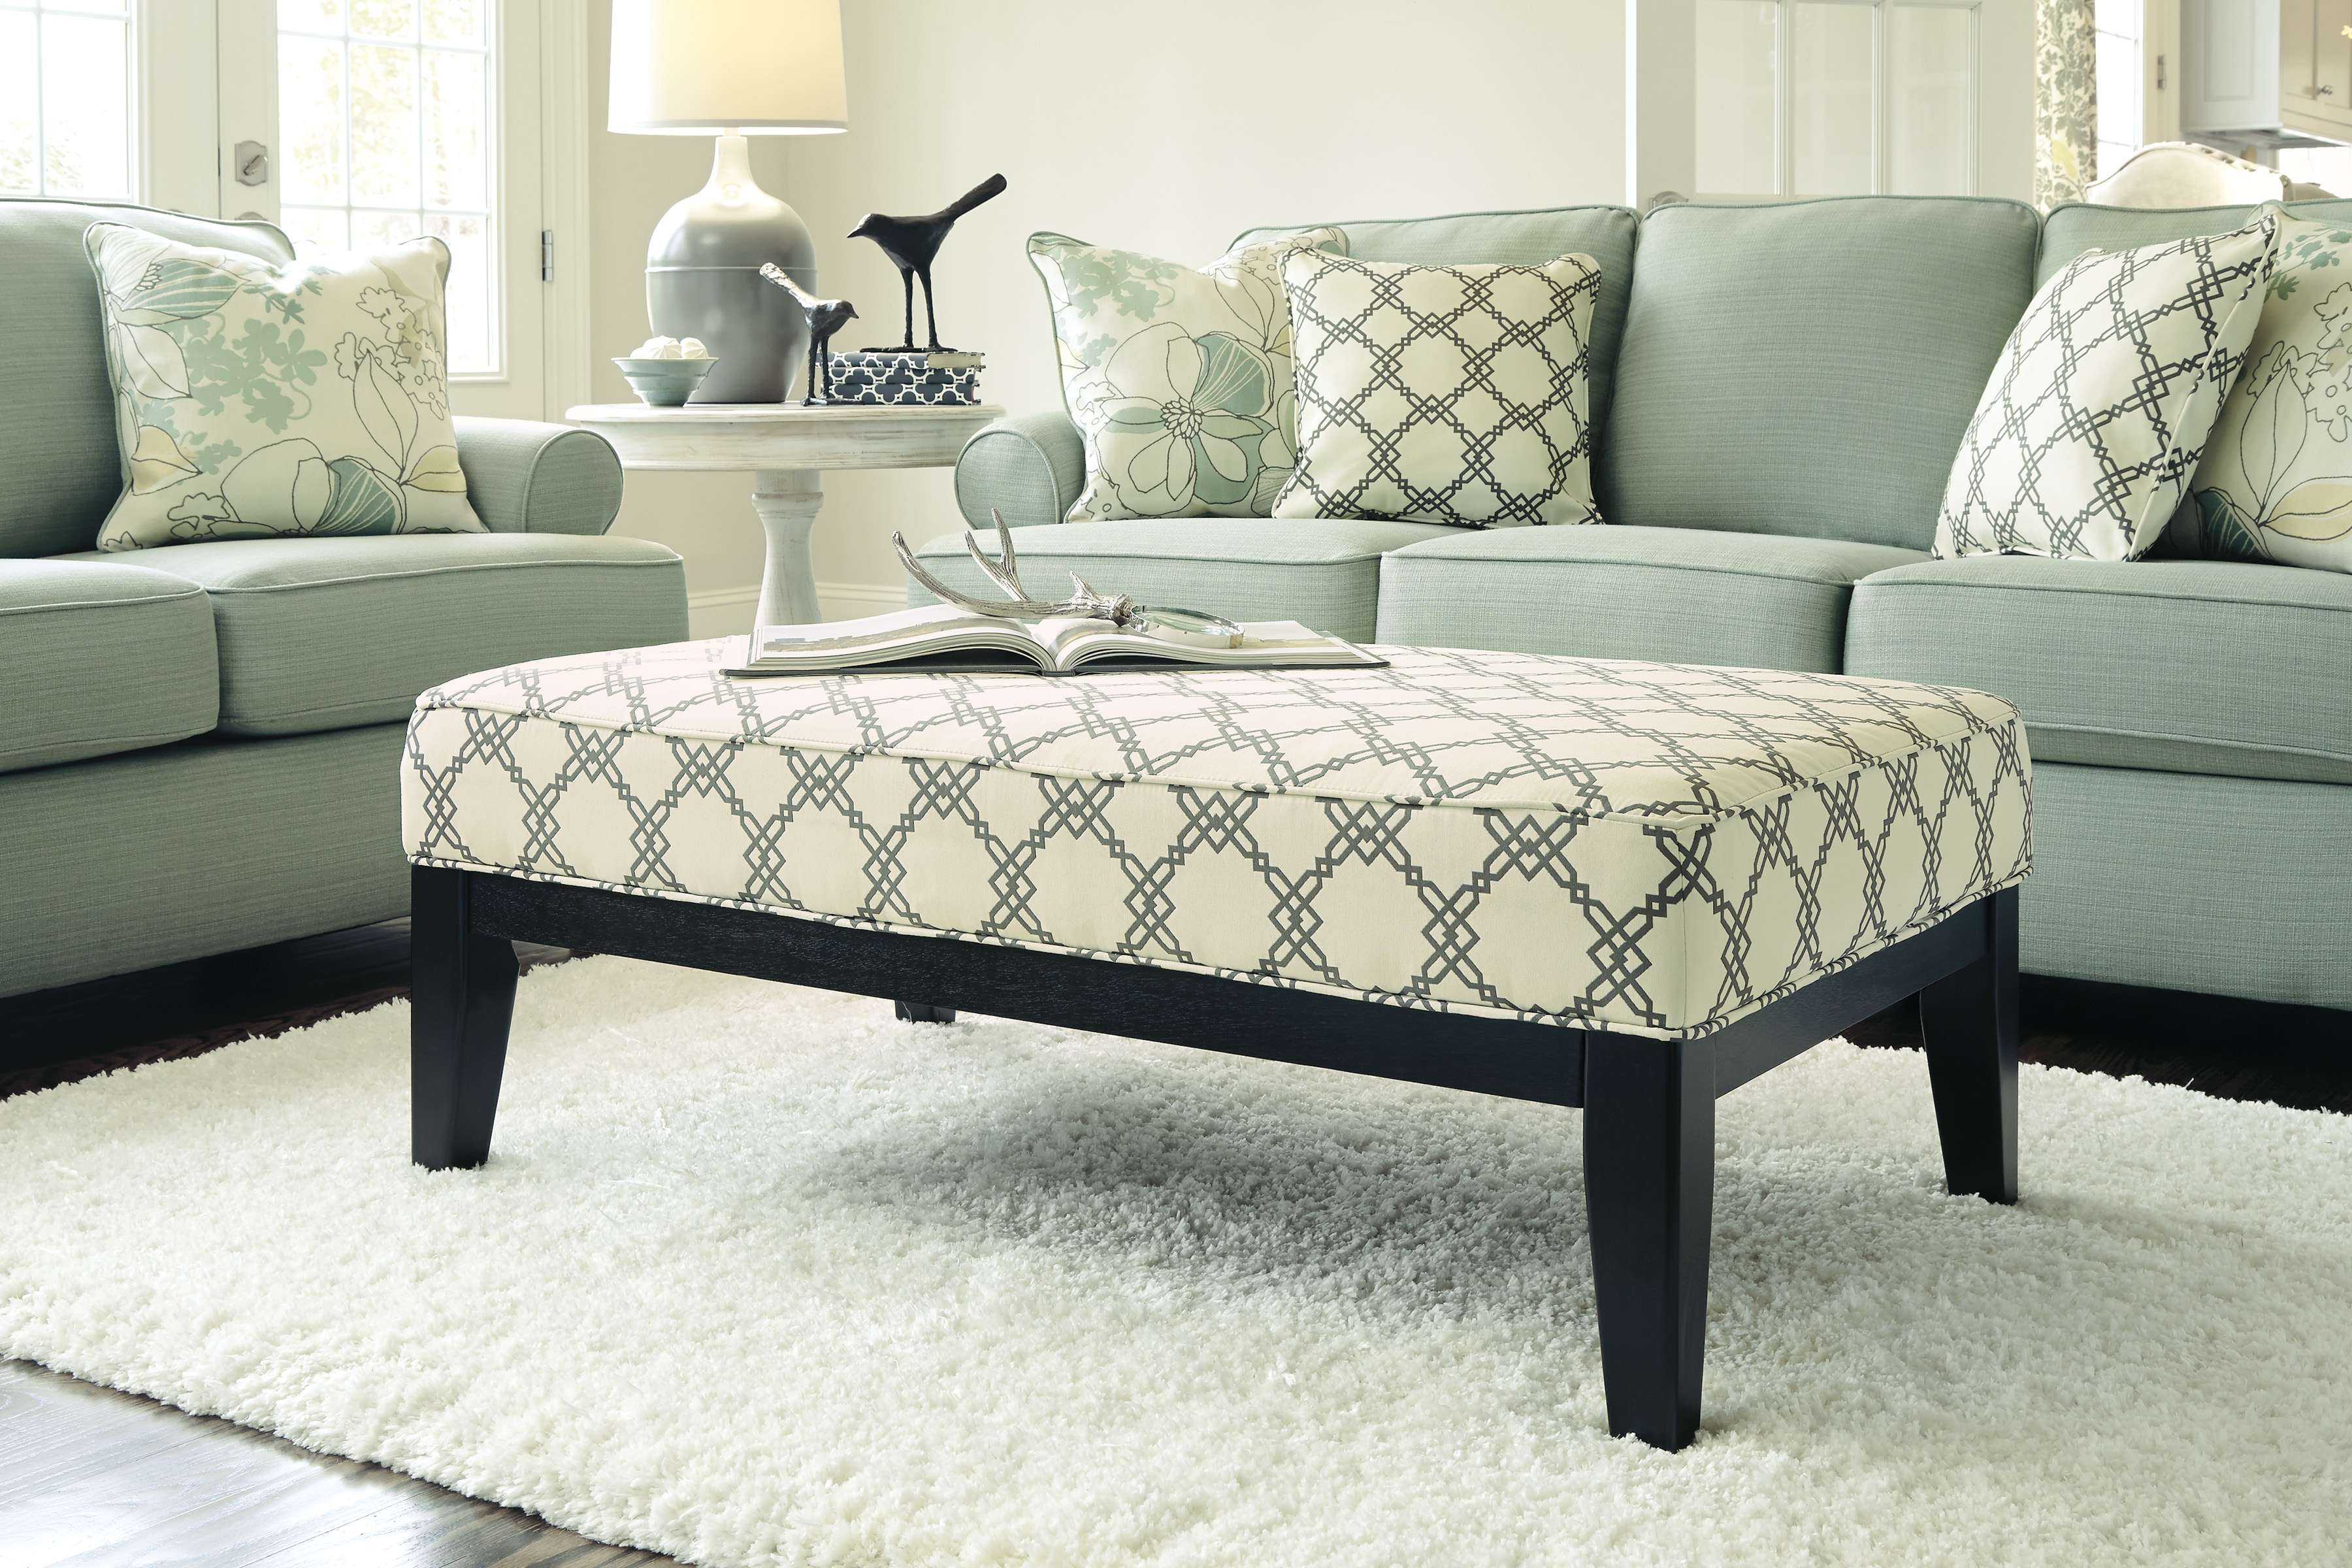 Coffee Tables : Small Tufted Ottoman Round Storage Coffee Table Within Current Green Ottoman Coffee Tables (View 6 of 20)